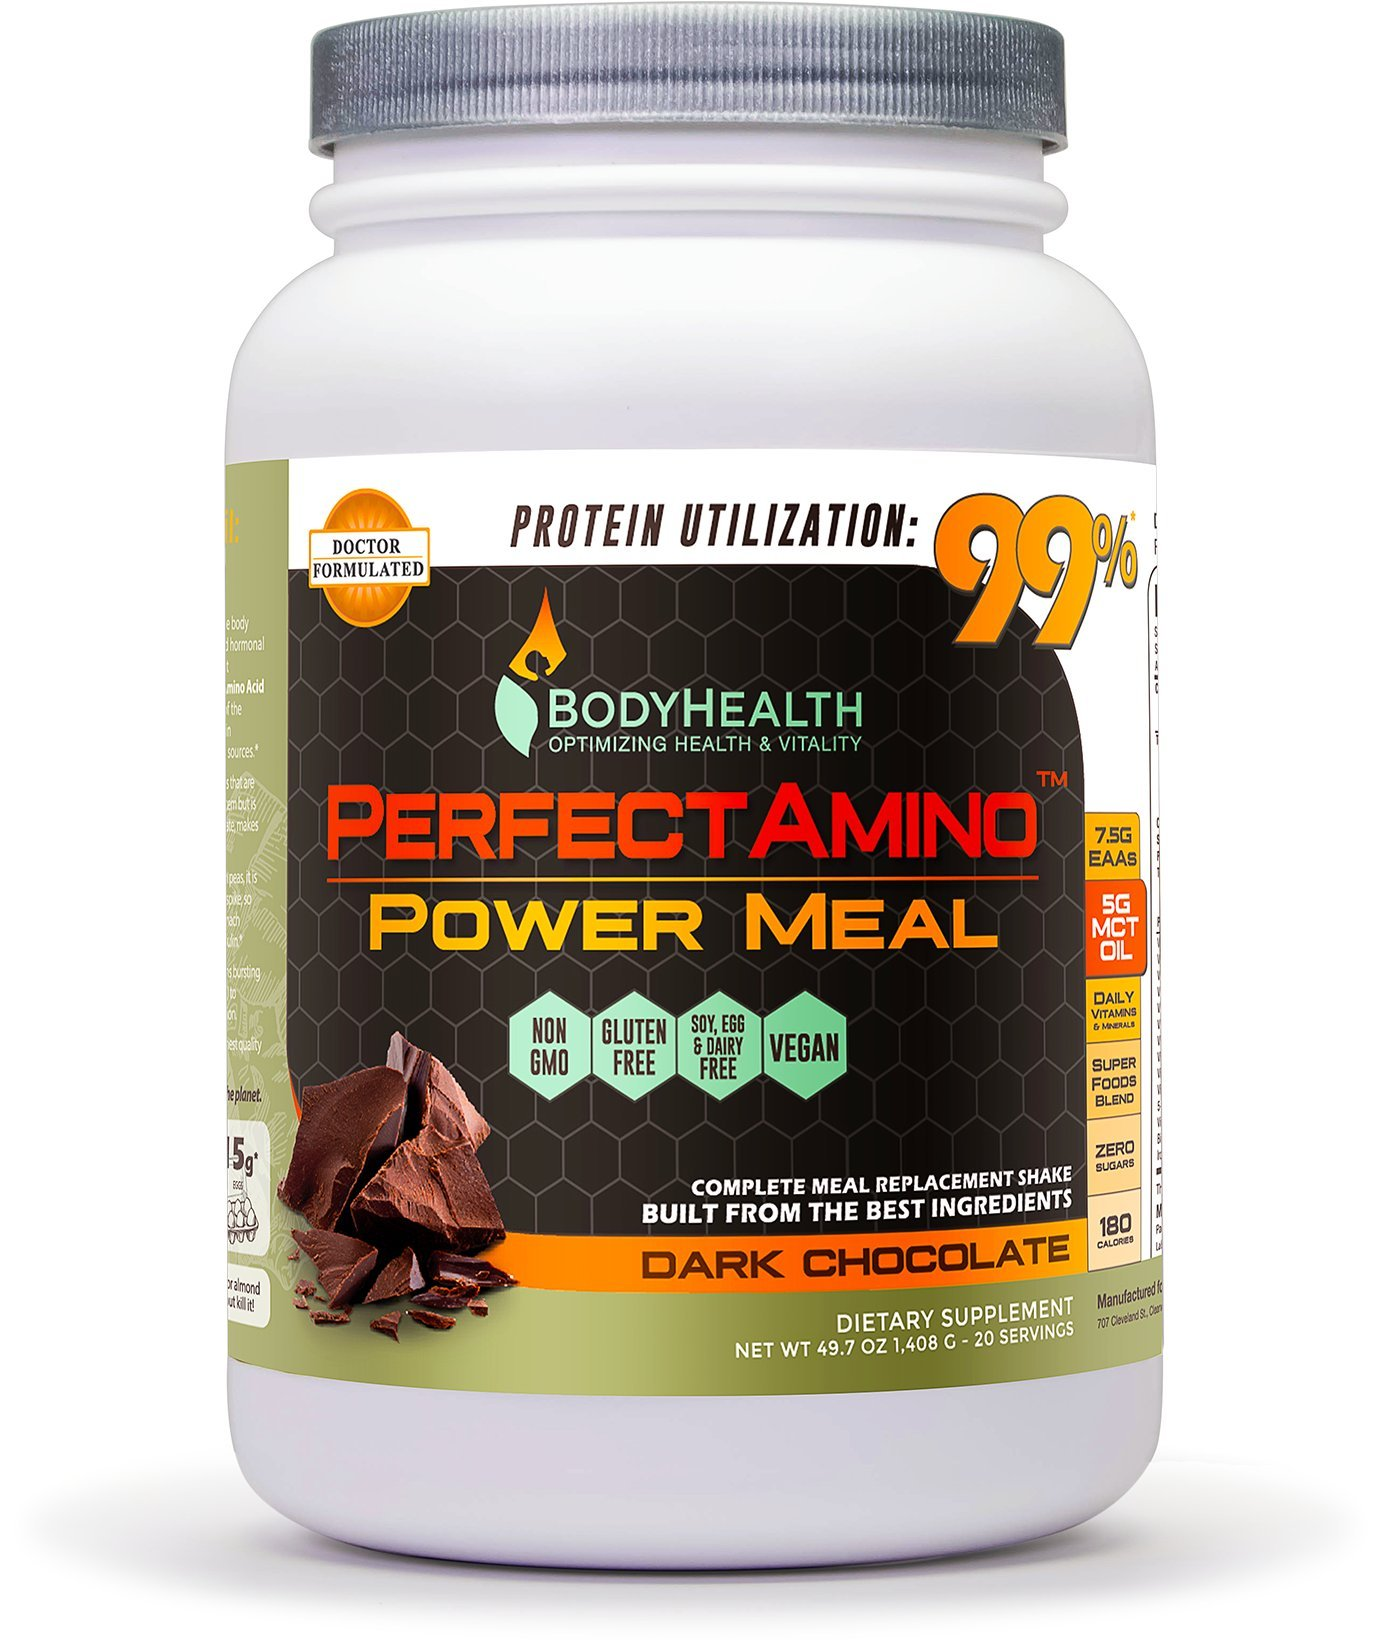 PerfectAmino Power Meal Shake, With MCT Oil, Carb 10, and Perfect Amino Protein base, 20 Servings